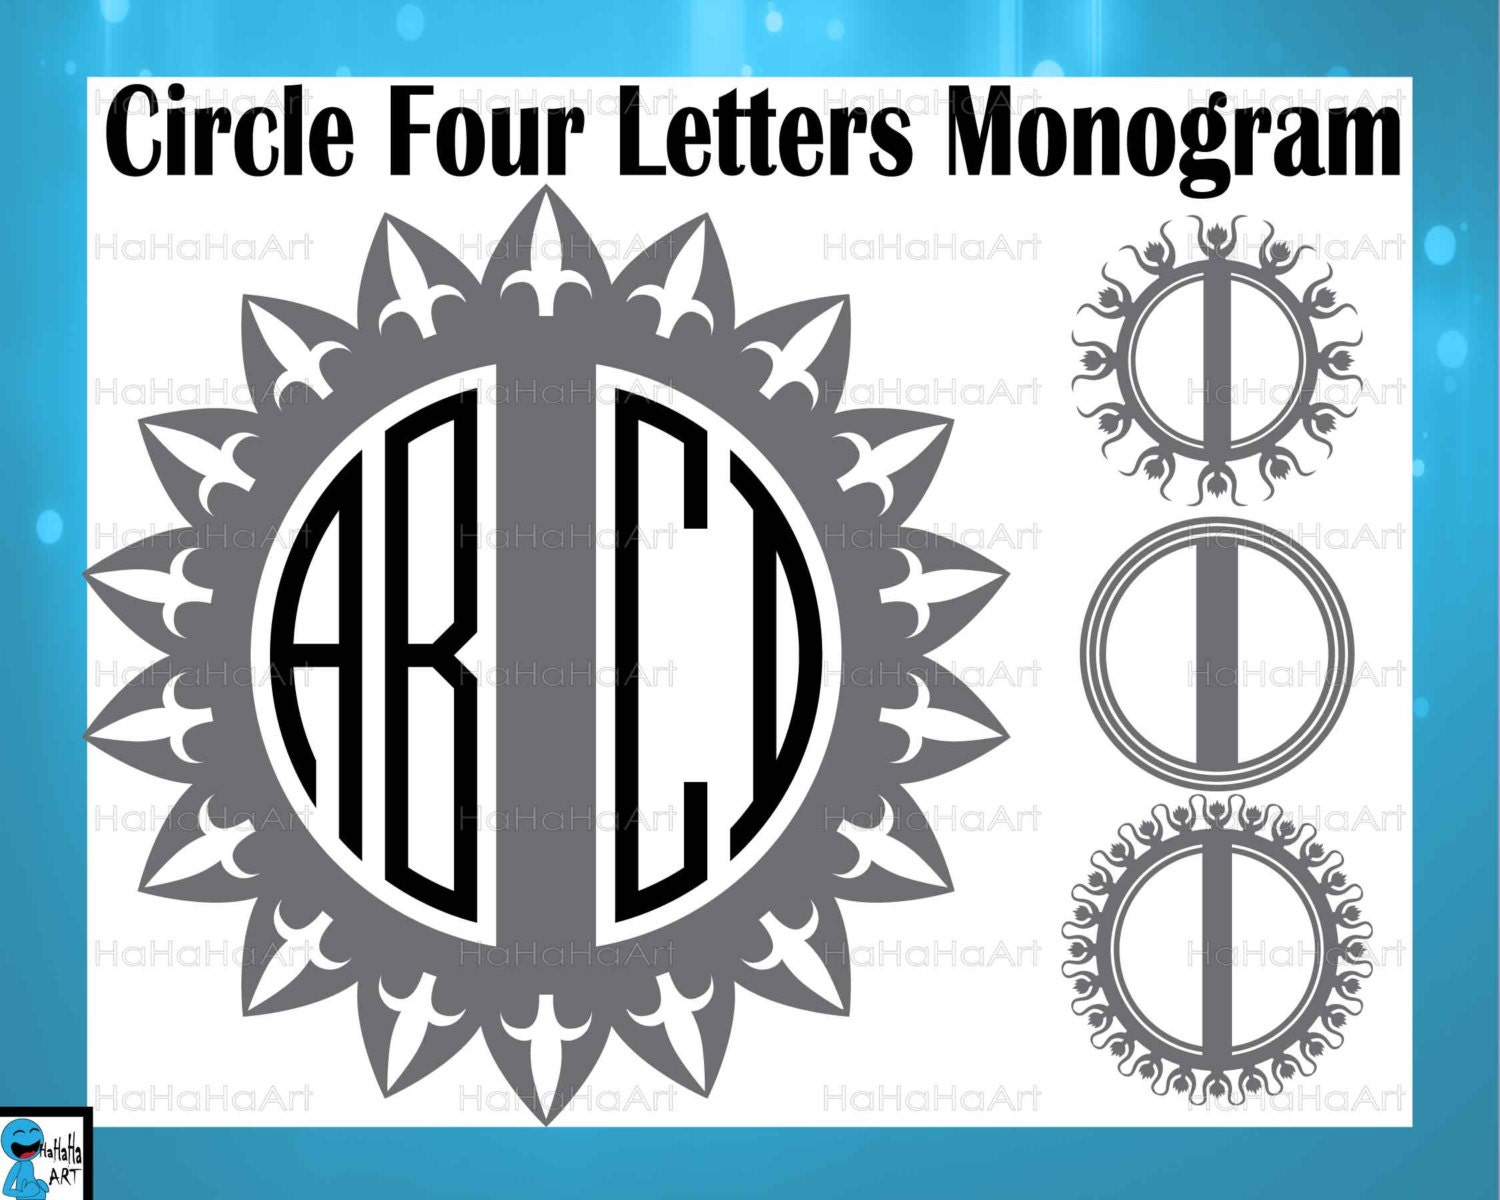 letter circle monogram by craftylittlenodes split circle four letters alphabet monogram black cutting 4